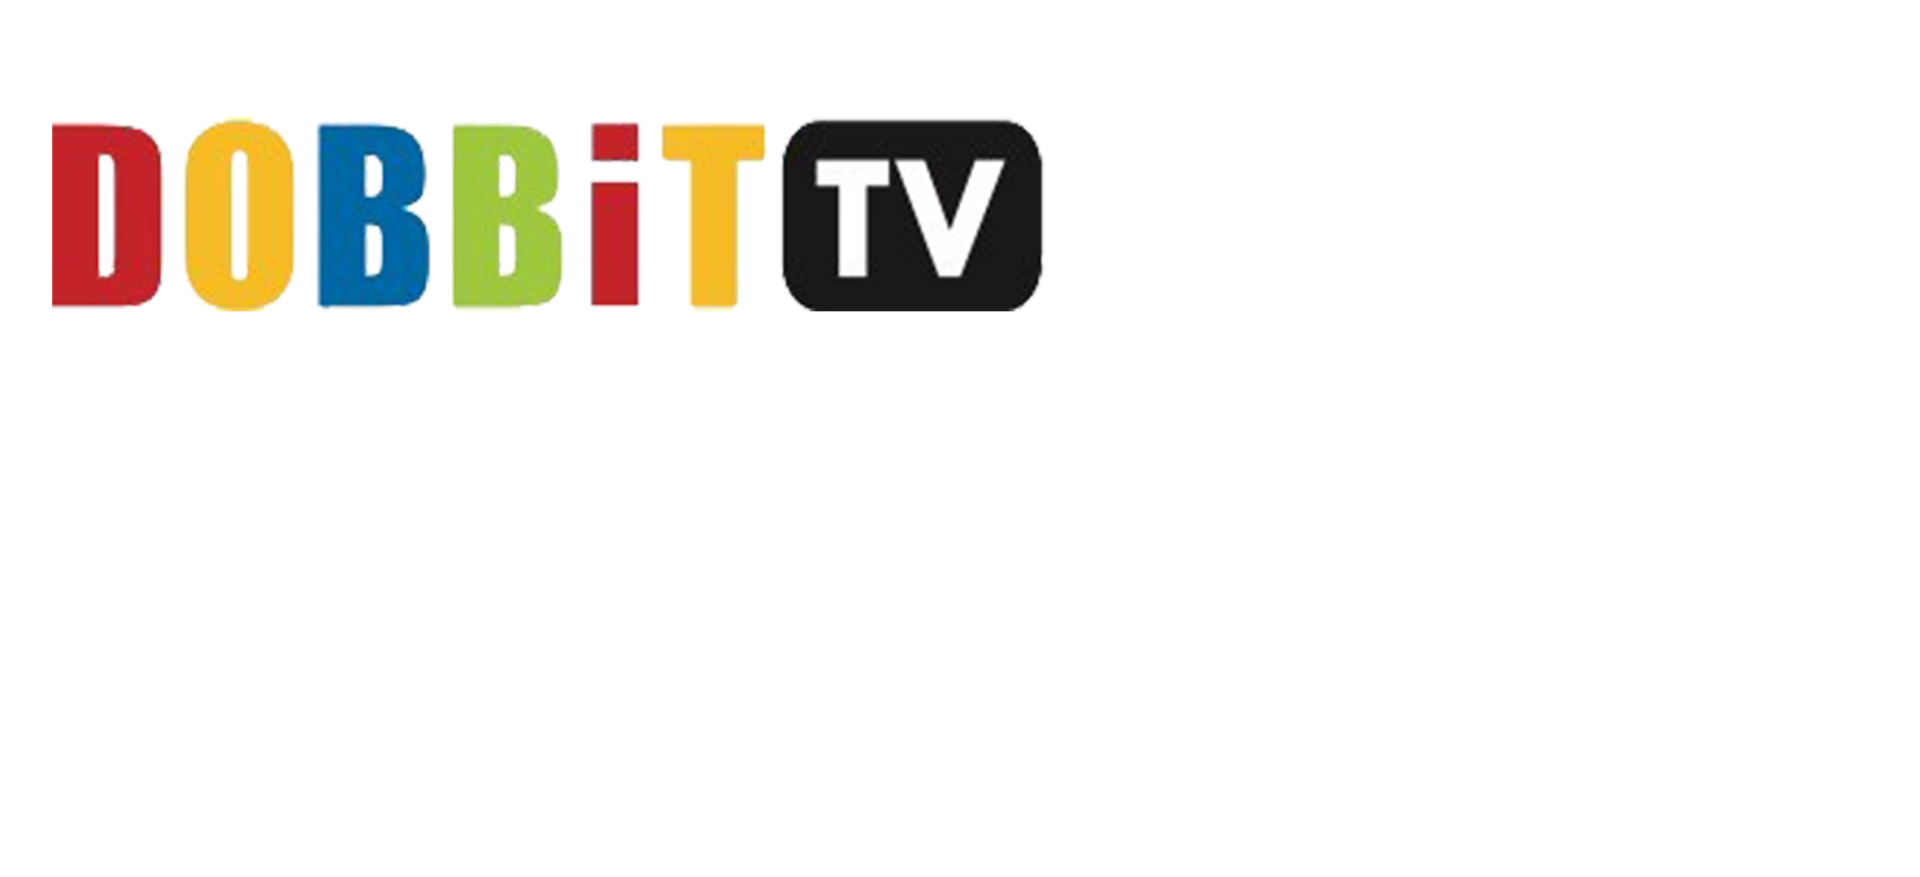 Transfer Dobbit TV